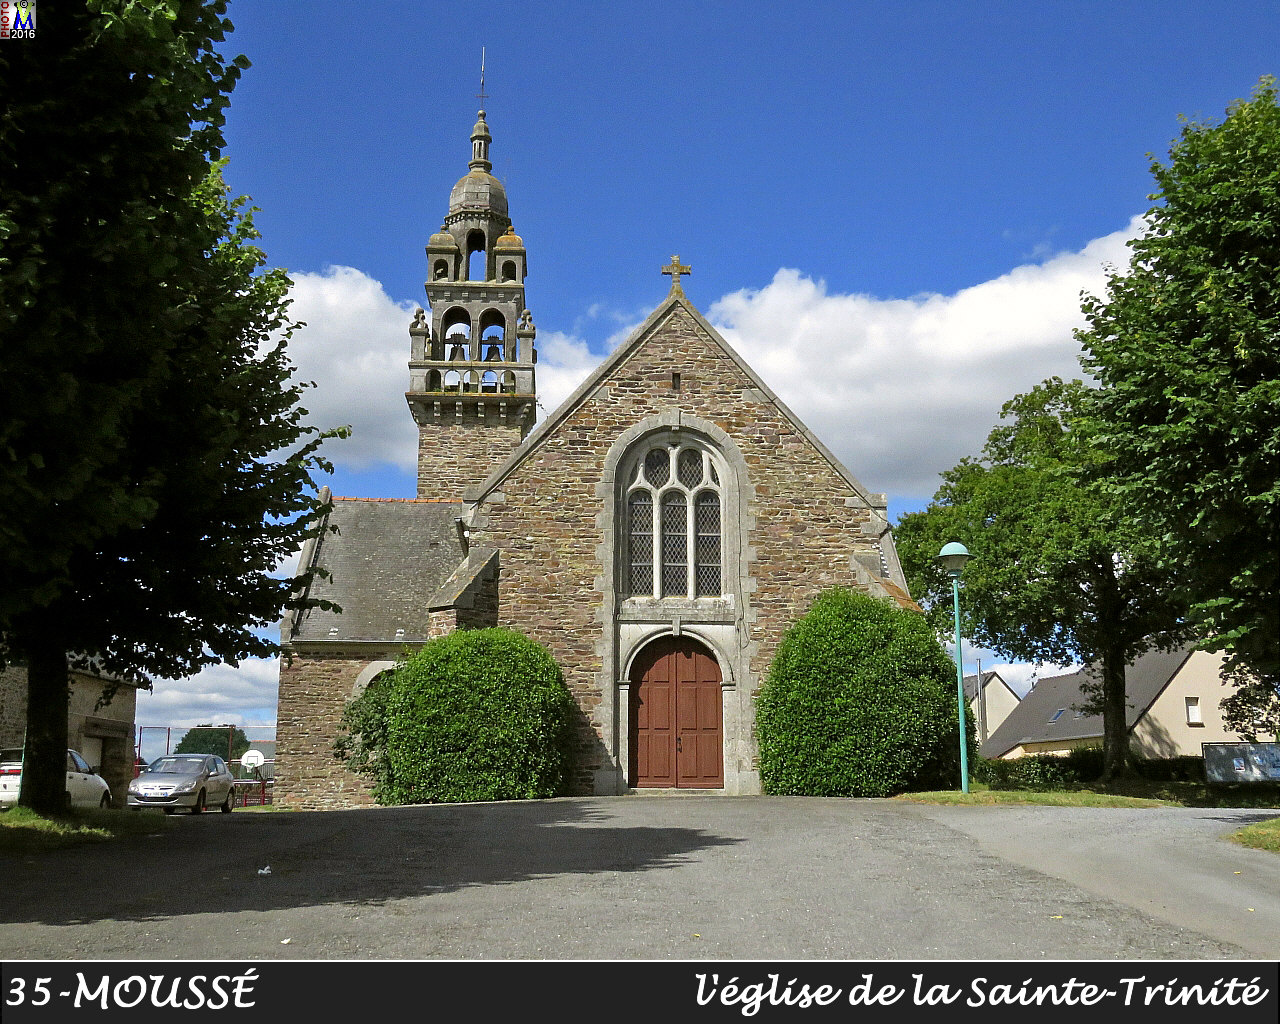 35MOUSSE_eglise_1000.jpg